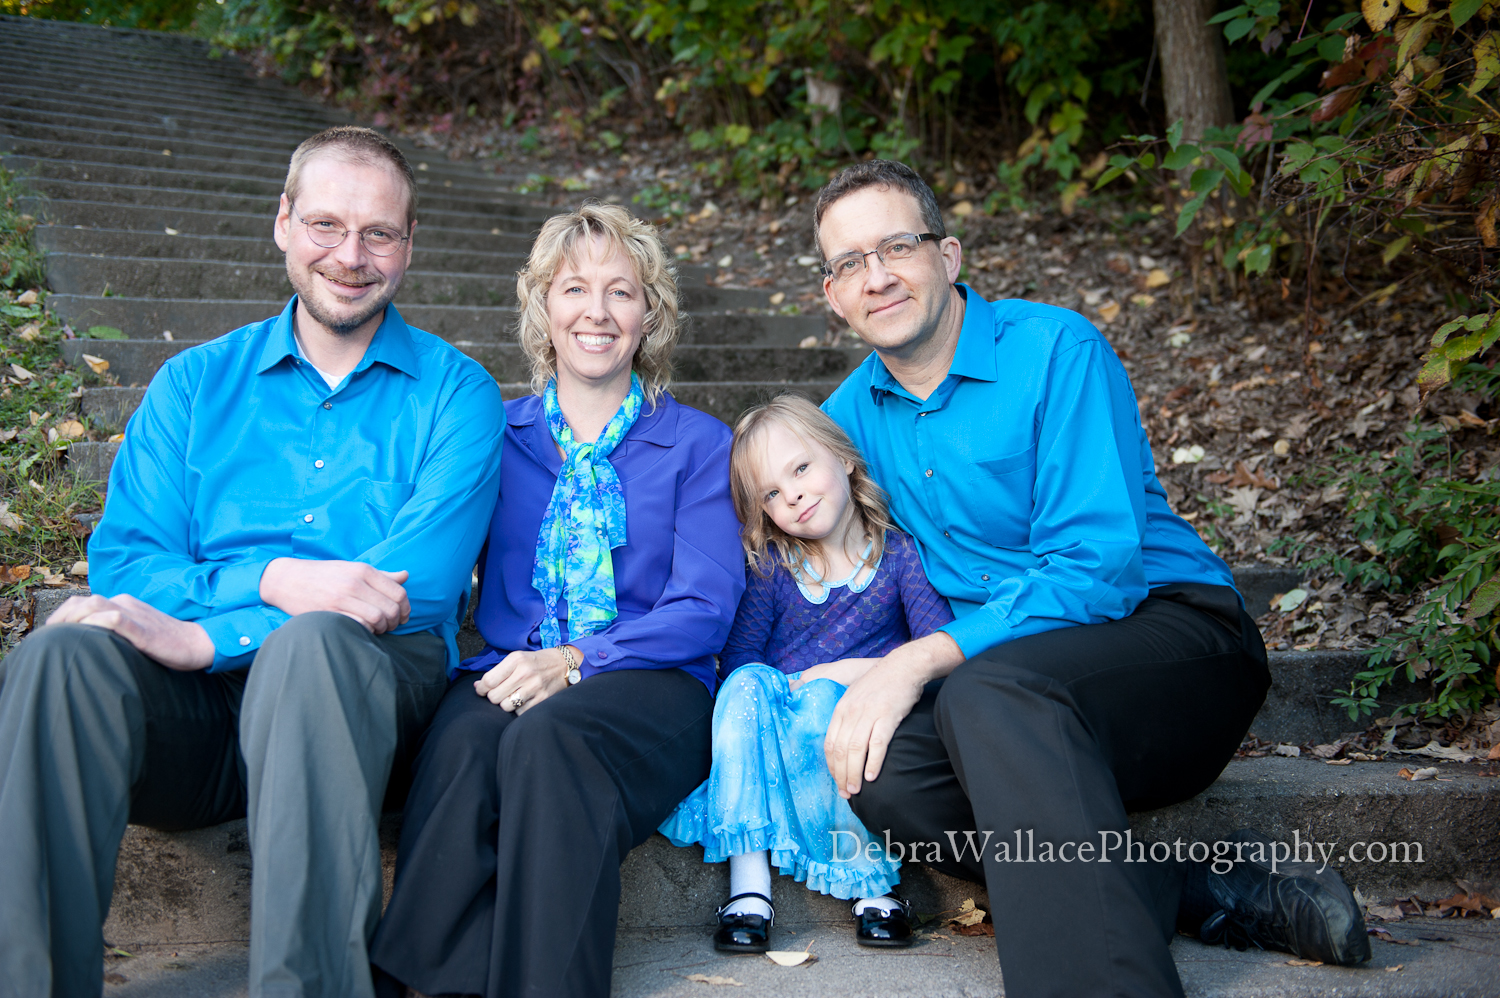 How to Choose Clothes for Your Family Photo Session